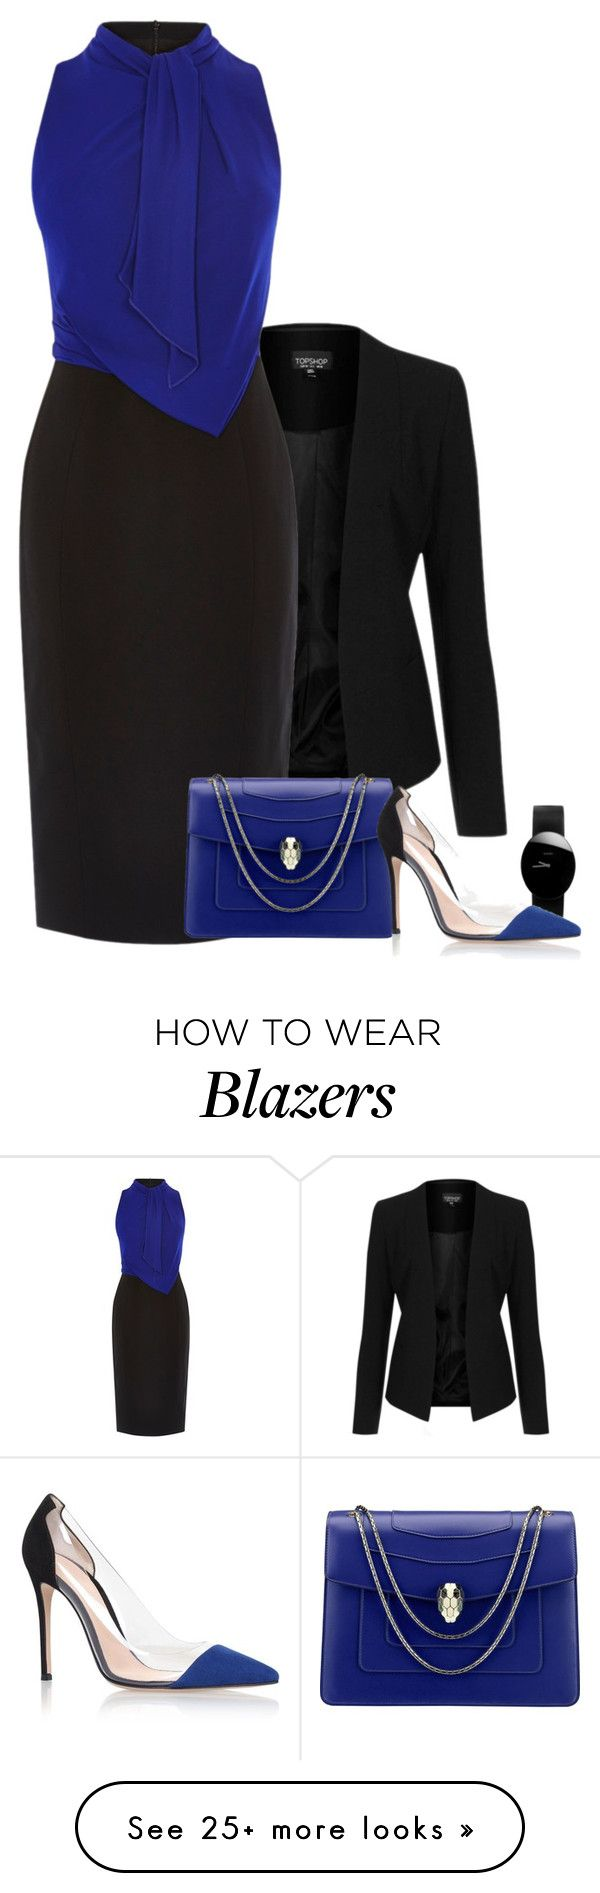 """Untitled #945"" by mrseclipse on Polyvore featuring Topshop, Karen Millen, Bulgari, Rado and Gianvito Rossi"